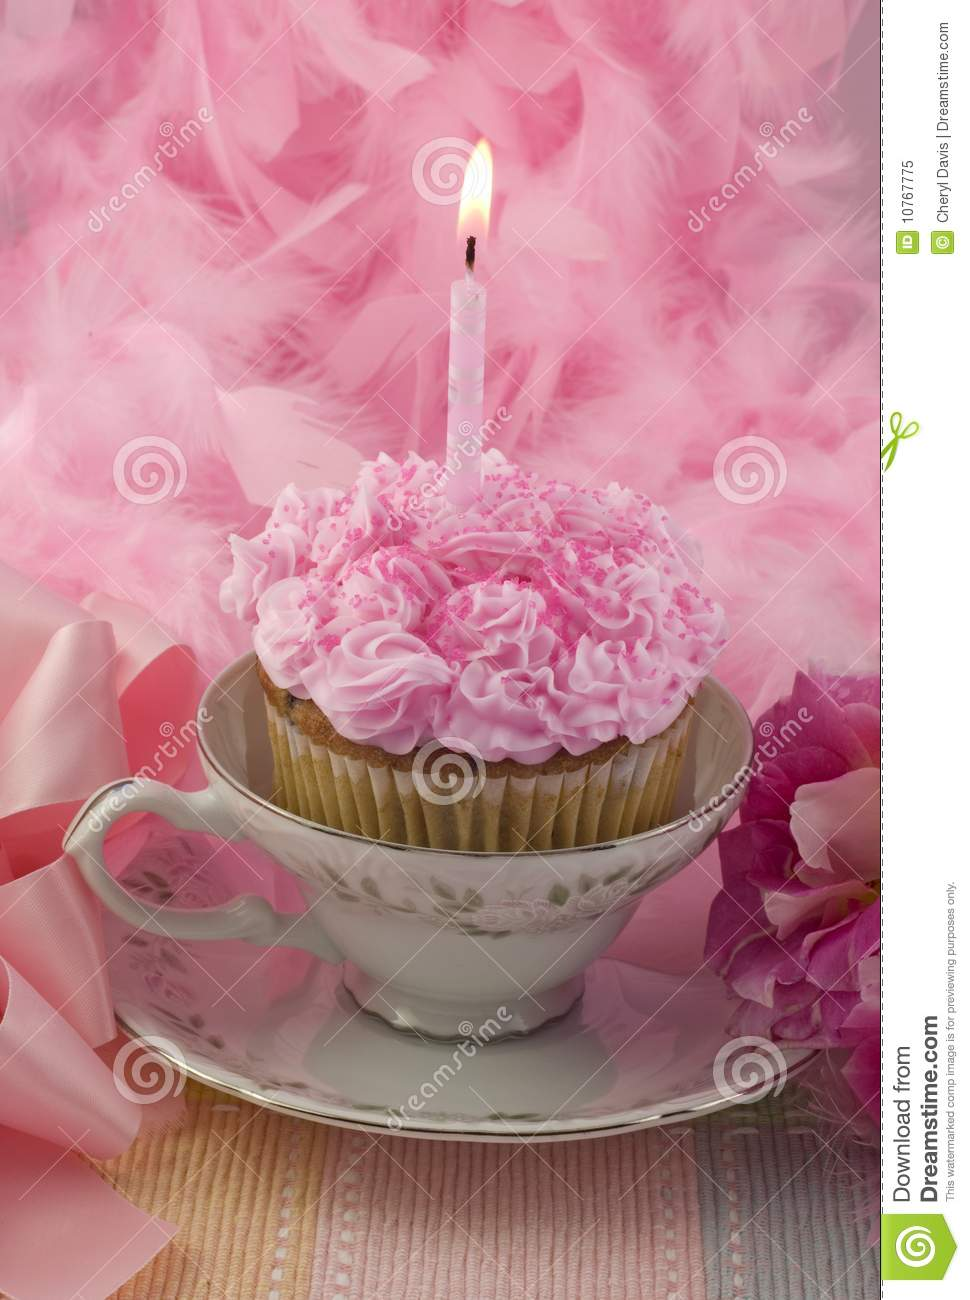 Pink Cupcake With Candle In Teacup Royalty Free Stock